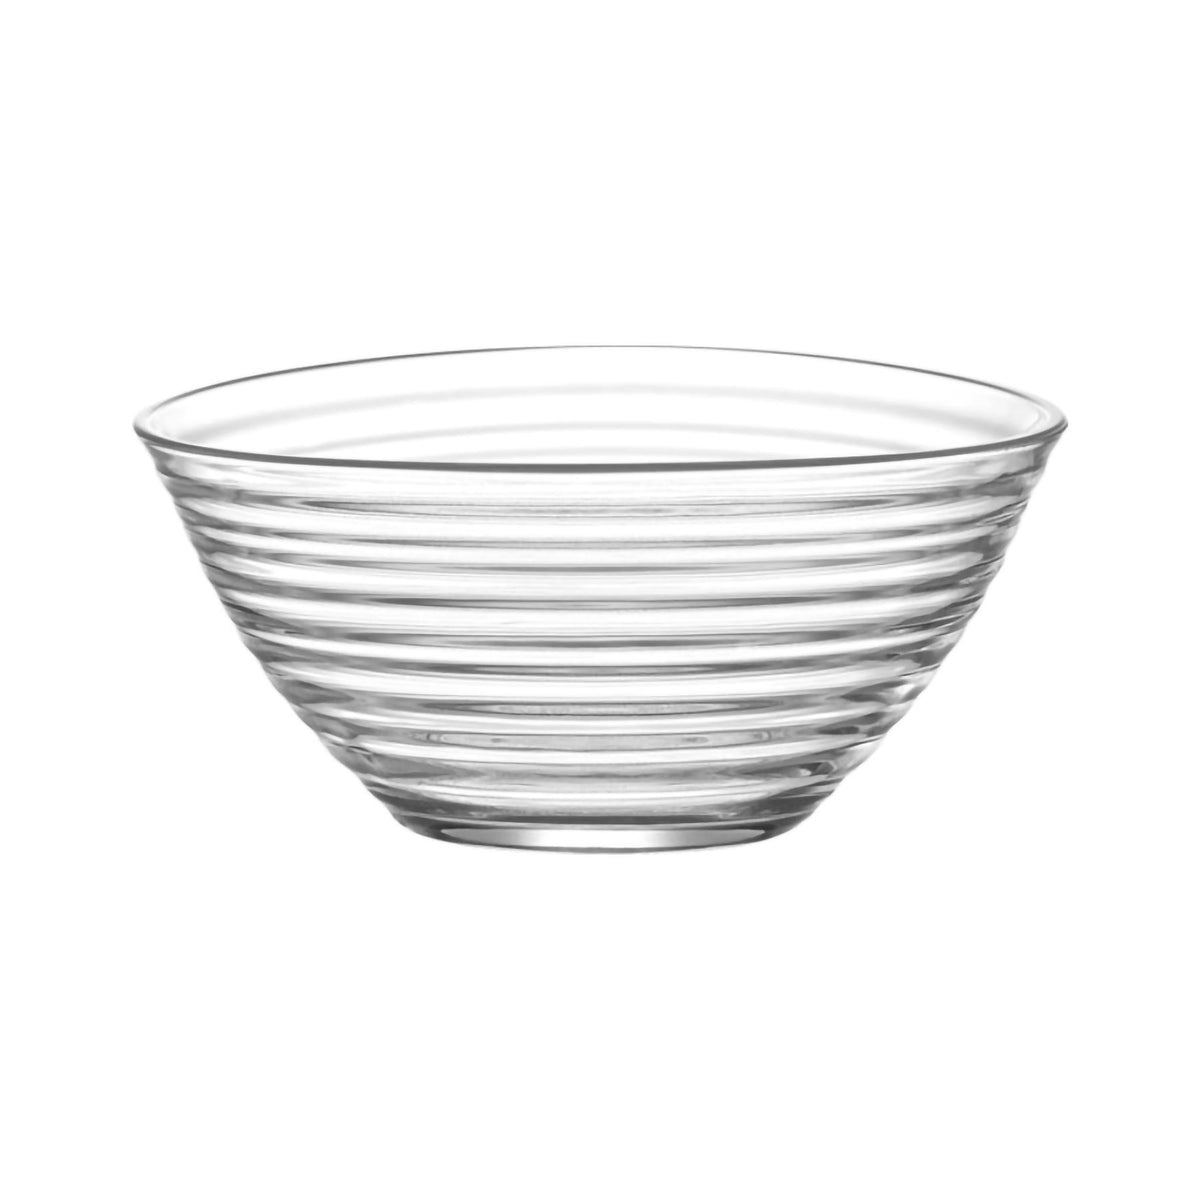 LAV Derin Large Glass Snack / Serving Bowls - 300ml